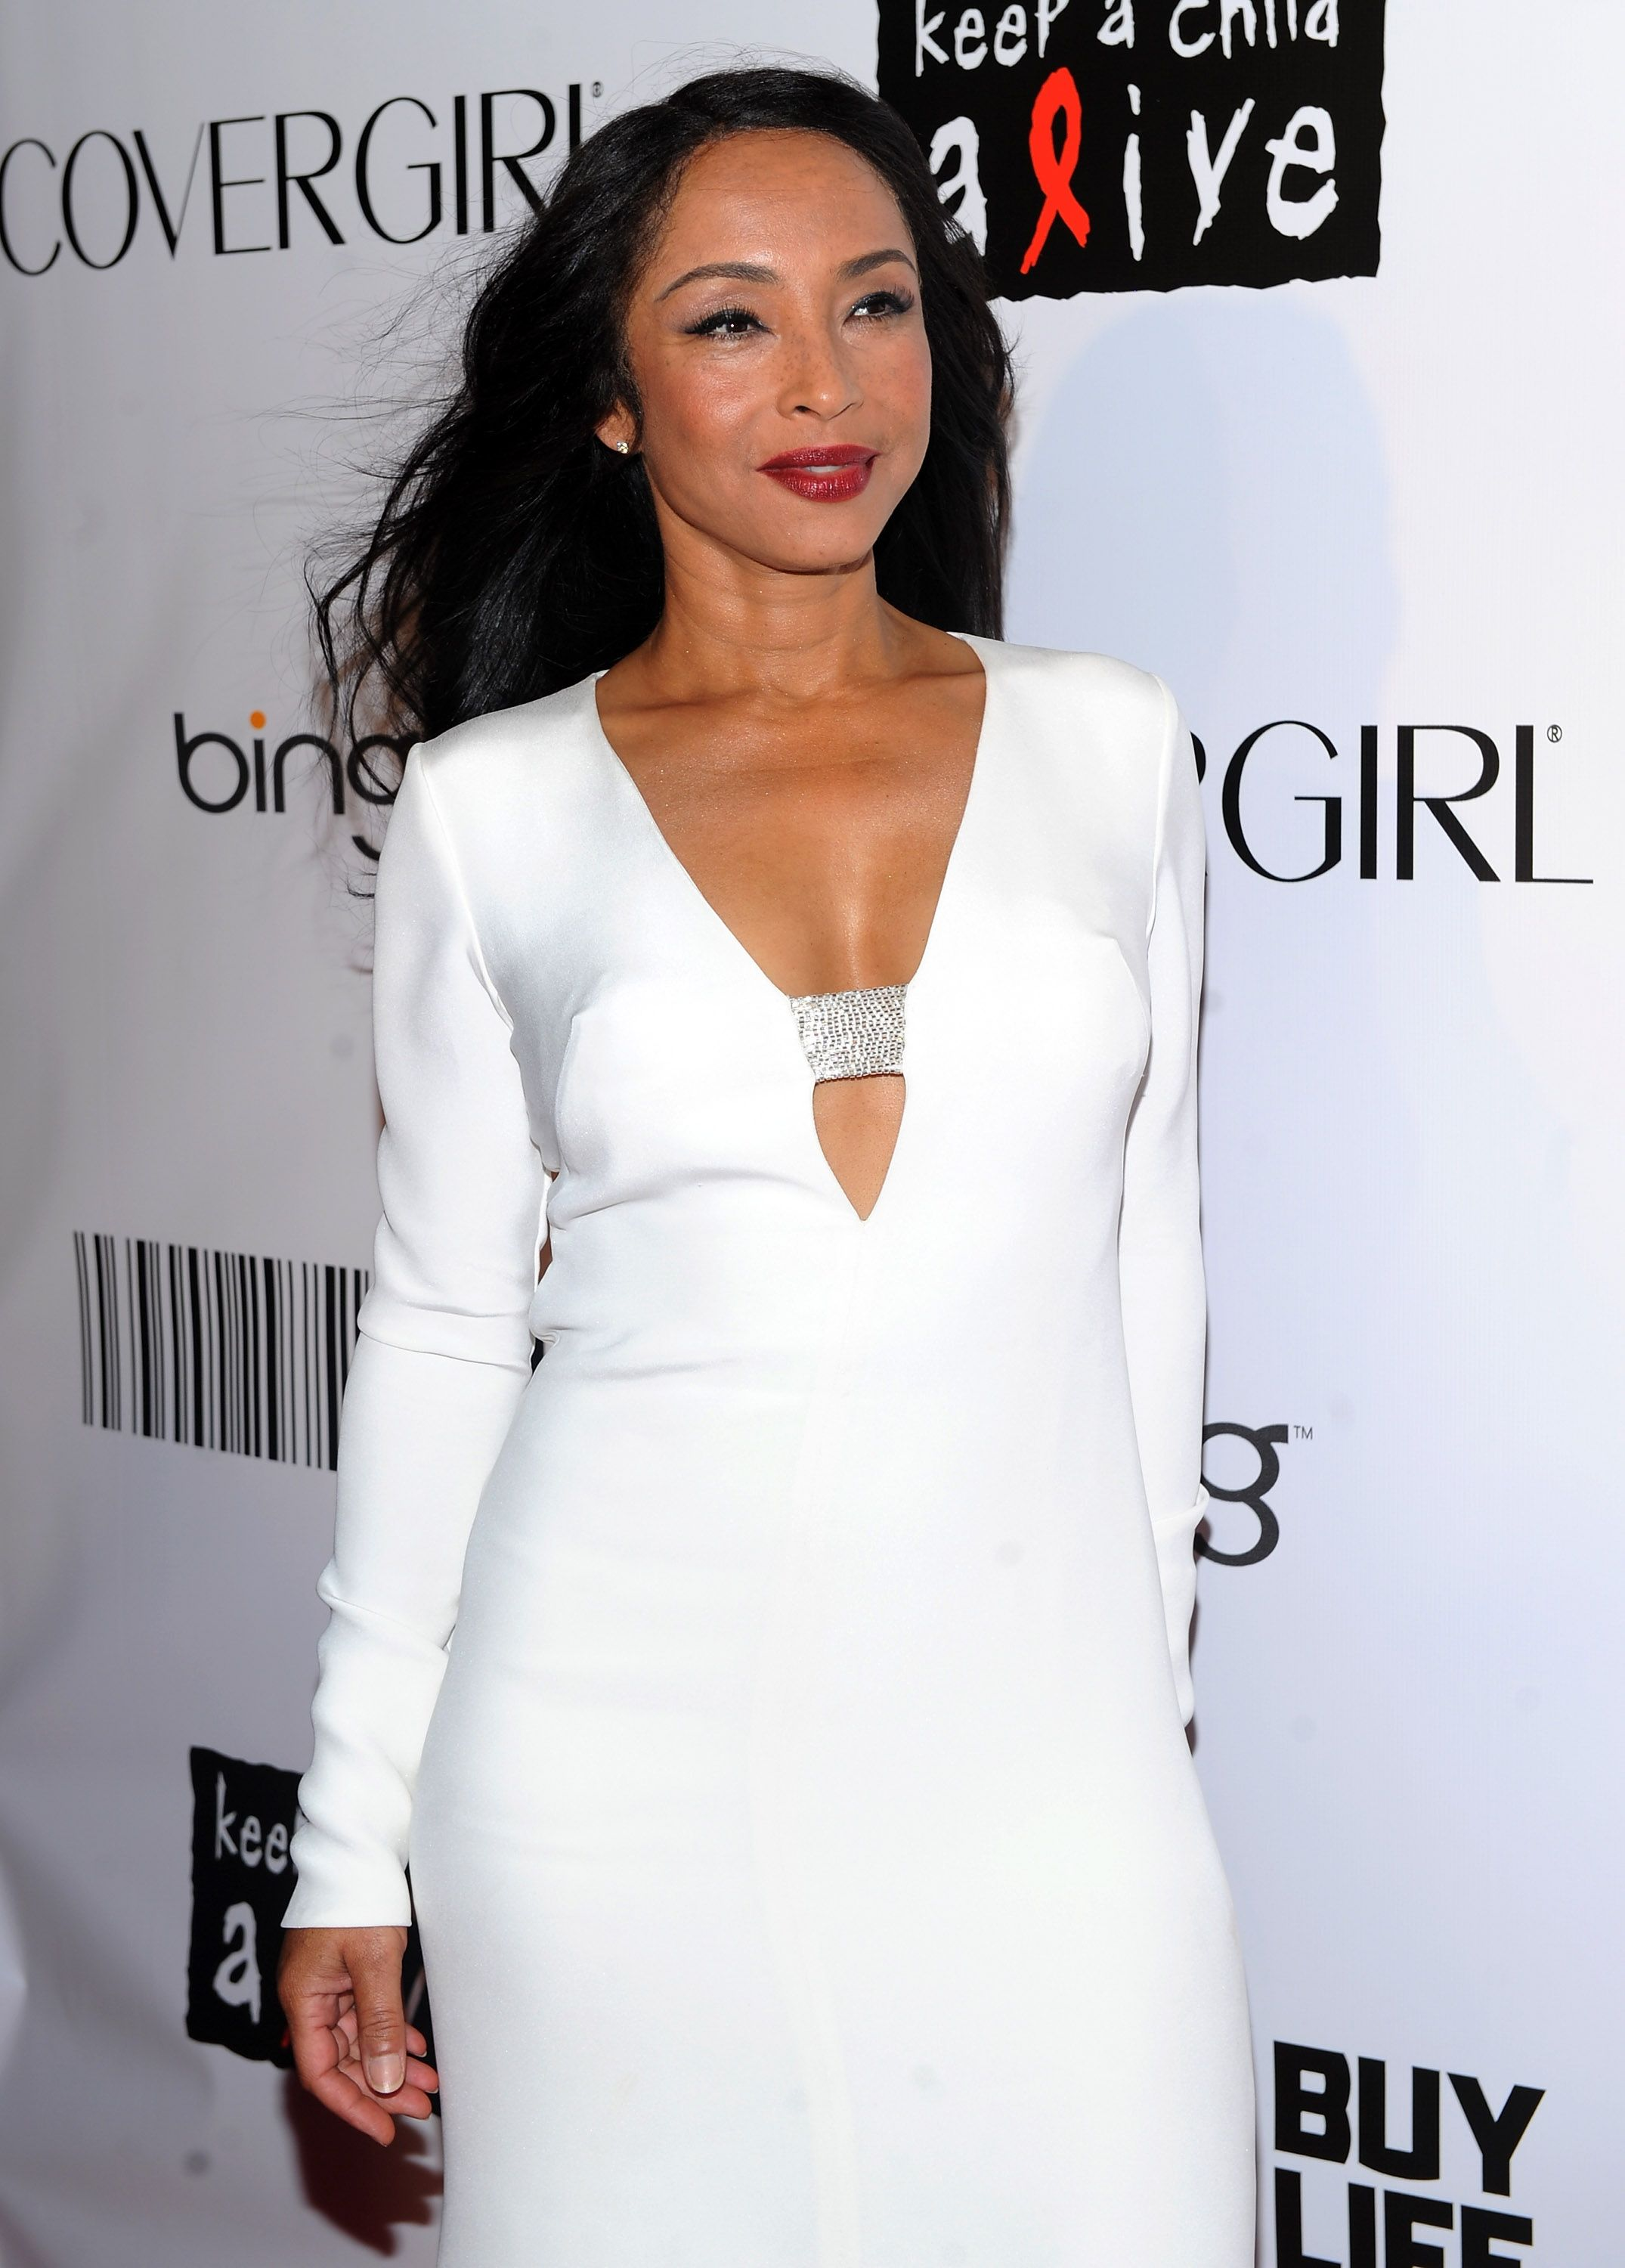 Sade during the 2010 Keep A Child Alive's Black Ball at the Hammerstein Ballroom on September 30, 2010 in New York City.   Source: Getty Images